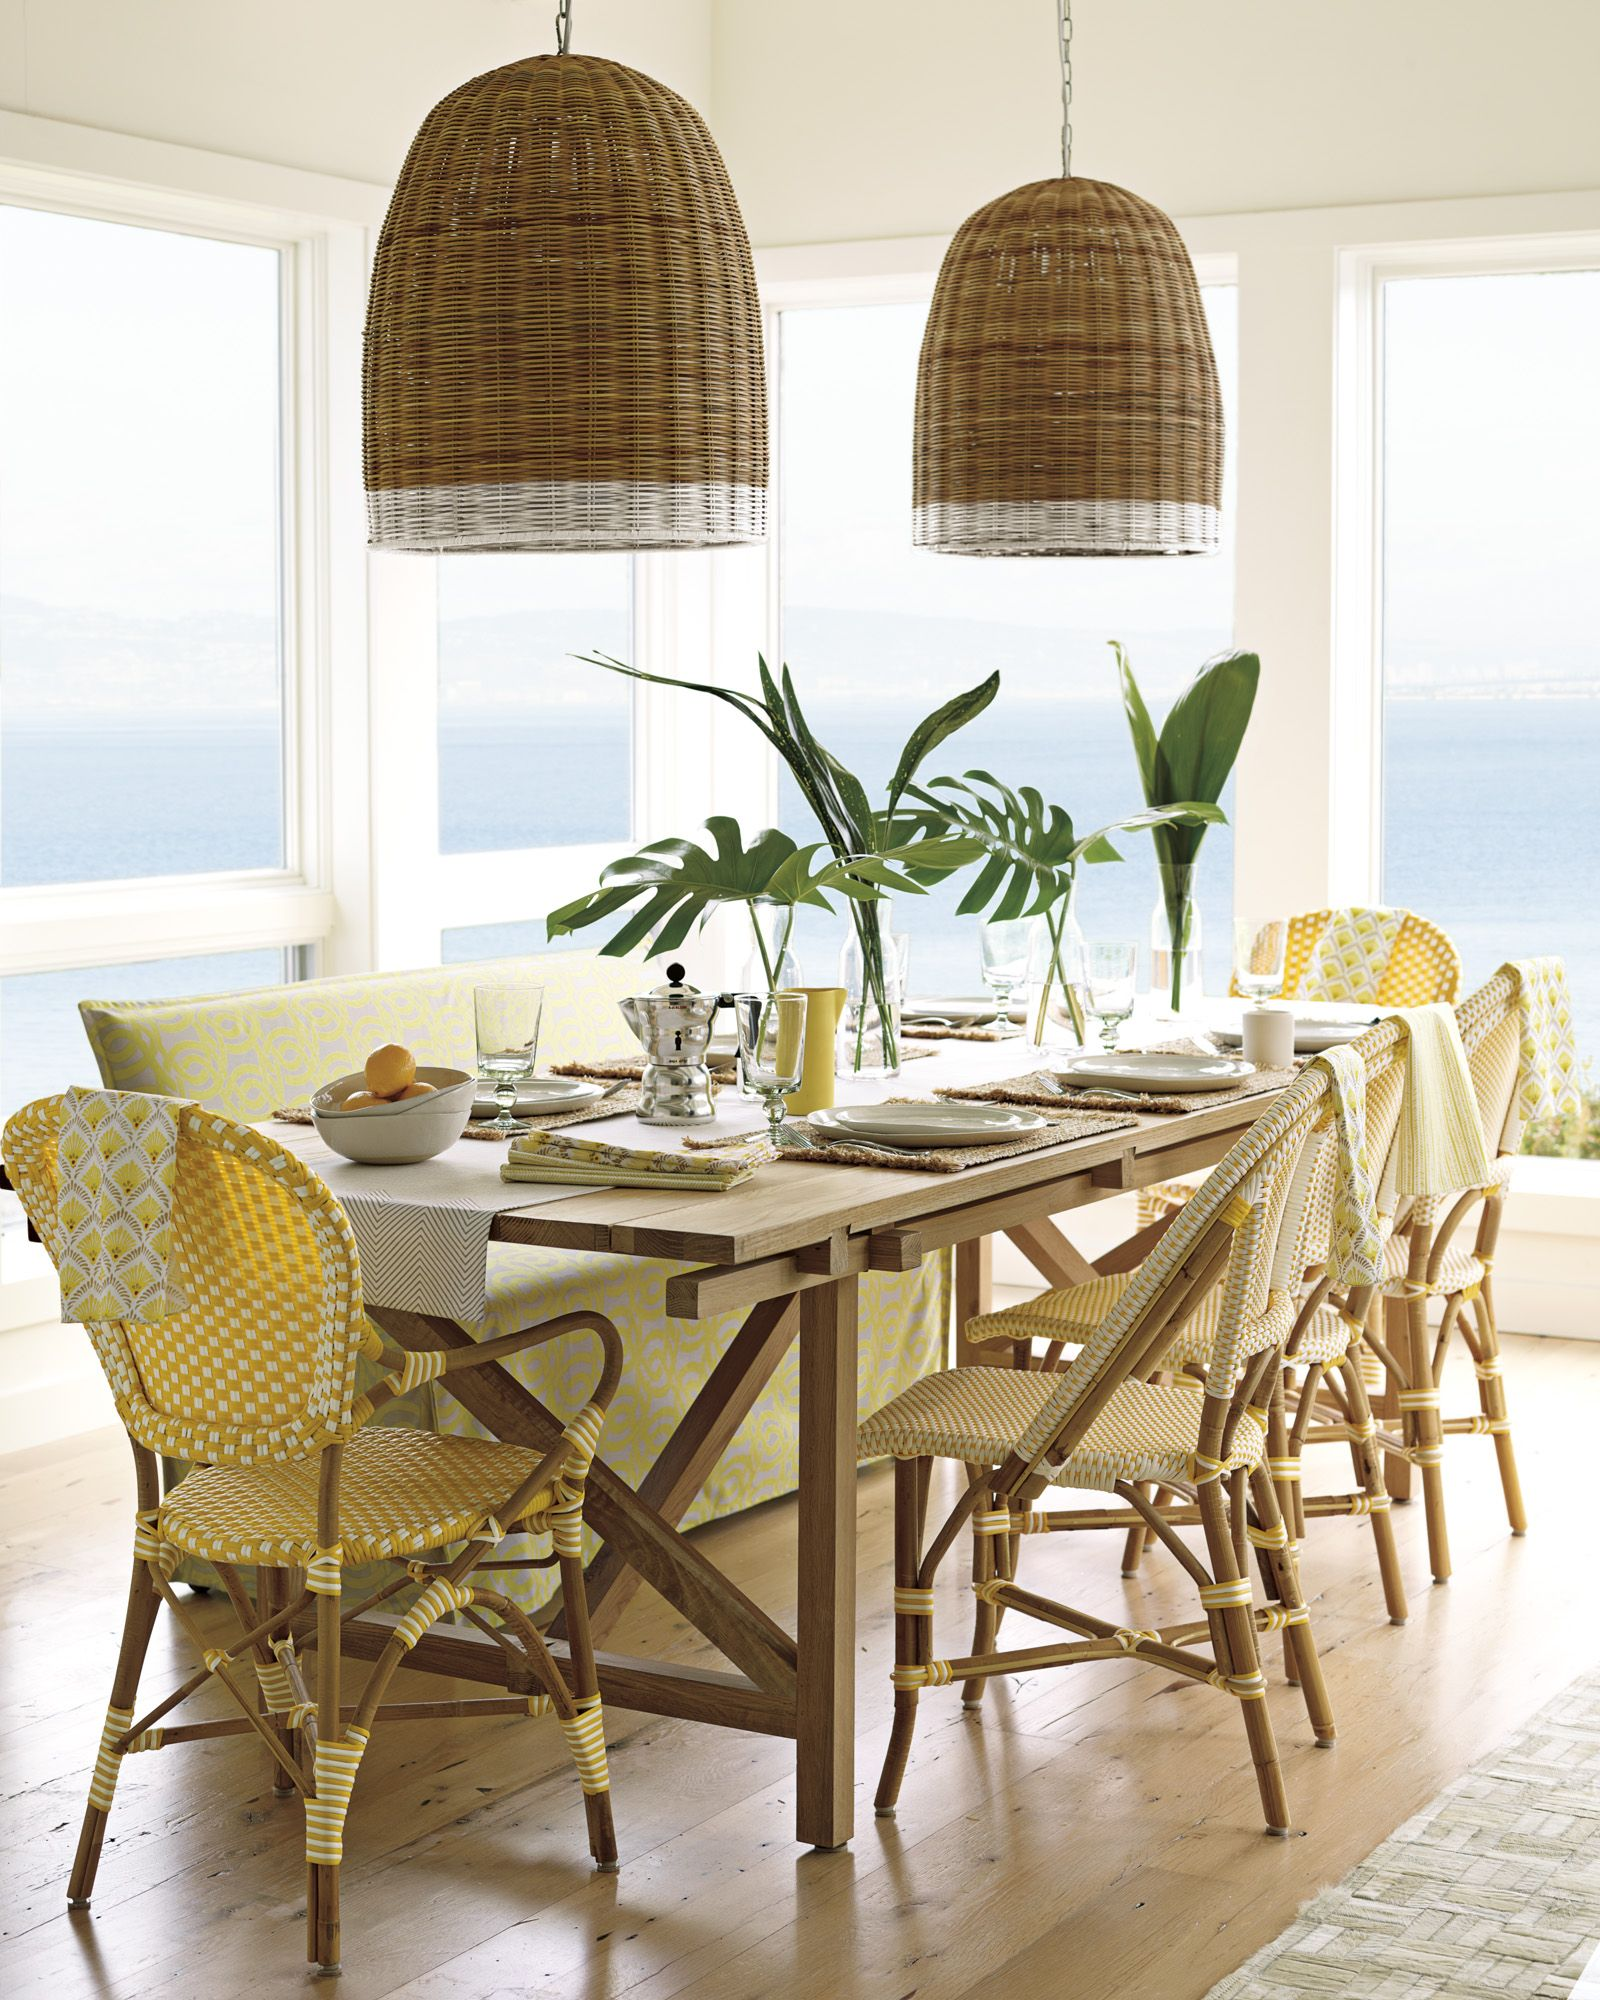 Attrayant Cheery Yellow And Light Wood And Bamboo Dining Room With Basket Pendants